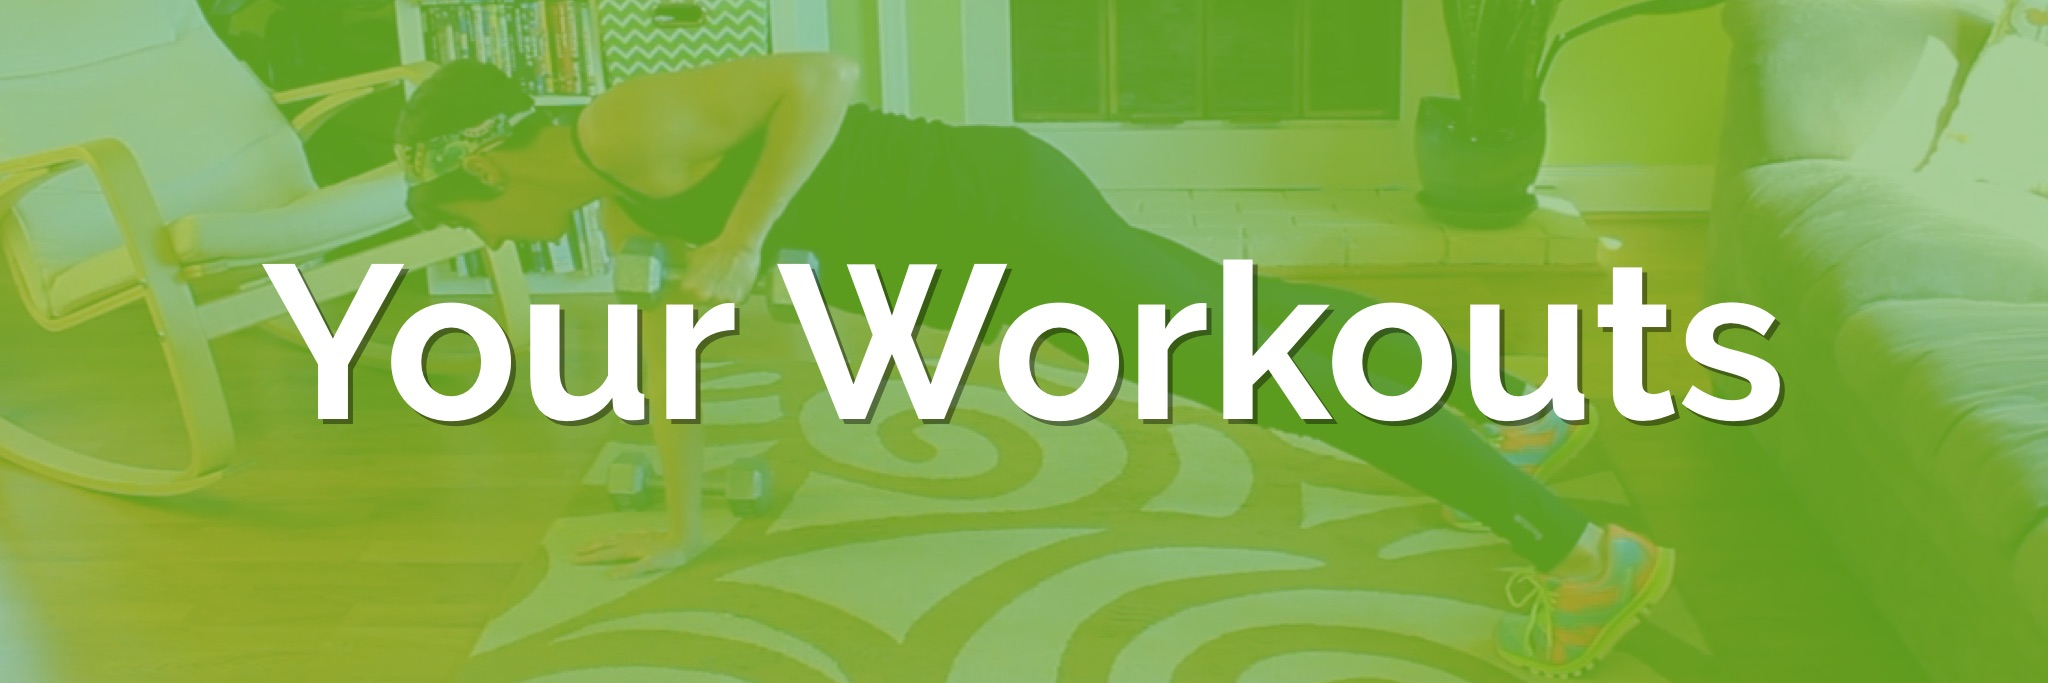 about the fit tutor- your workouts - online personal trainingabout the fit tutor- your workouts - online personal training